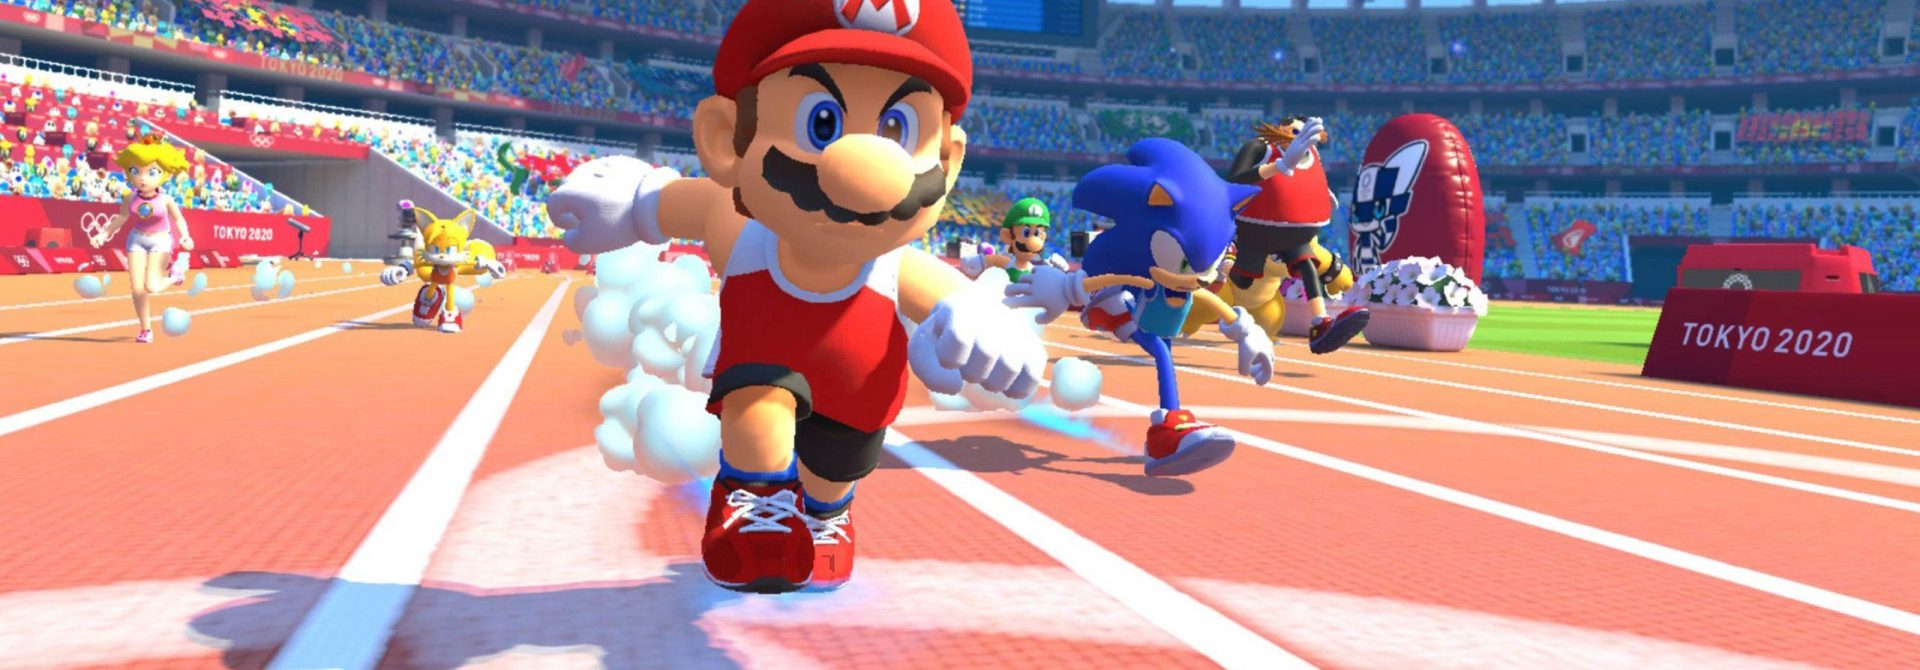 Free Demo Available For Mario & Sonic At The Olympic Games Tokyo 2020